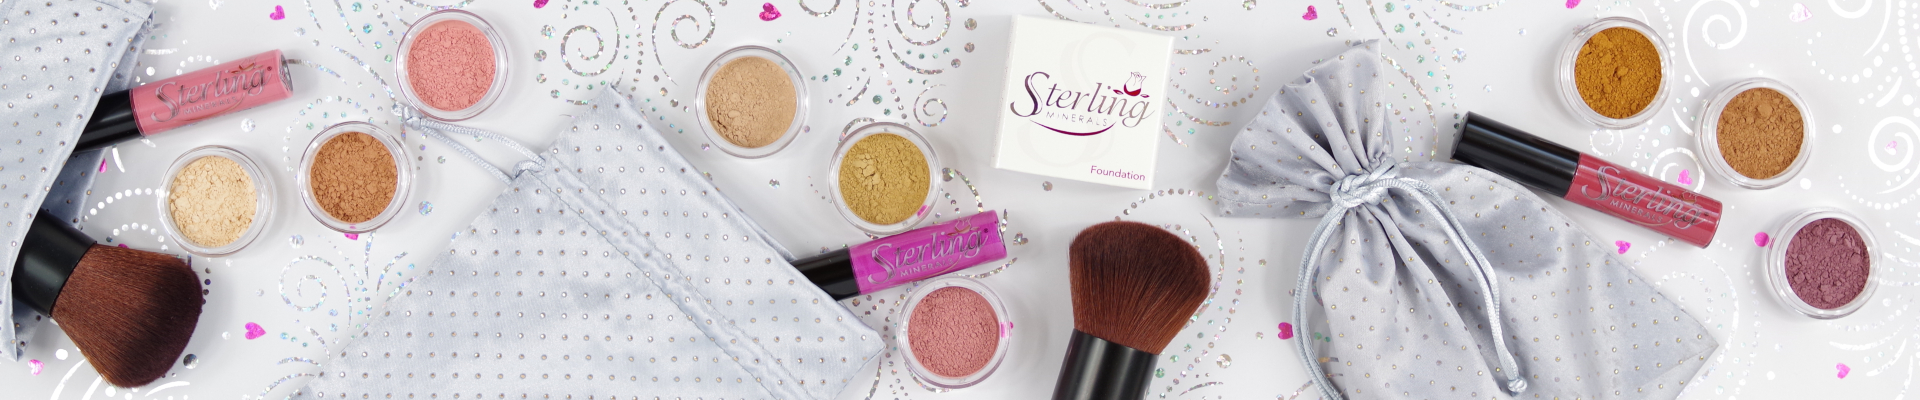 mineral-makeup-starter-kits-for-getting-ready-for-spring.jpg